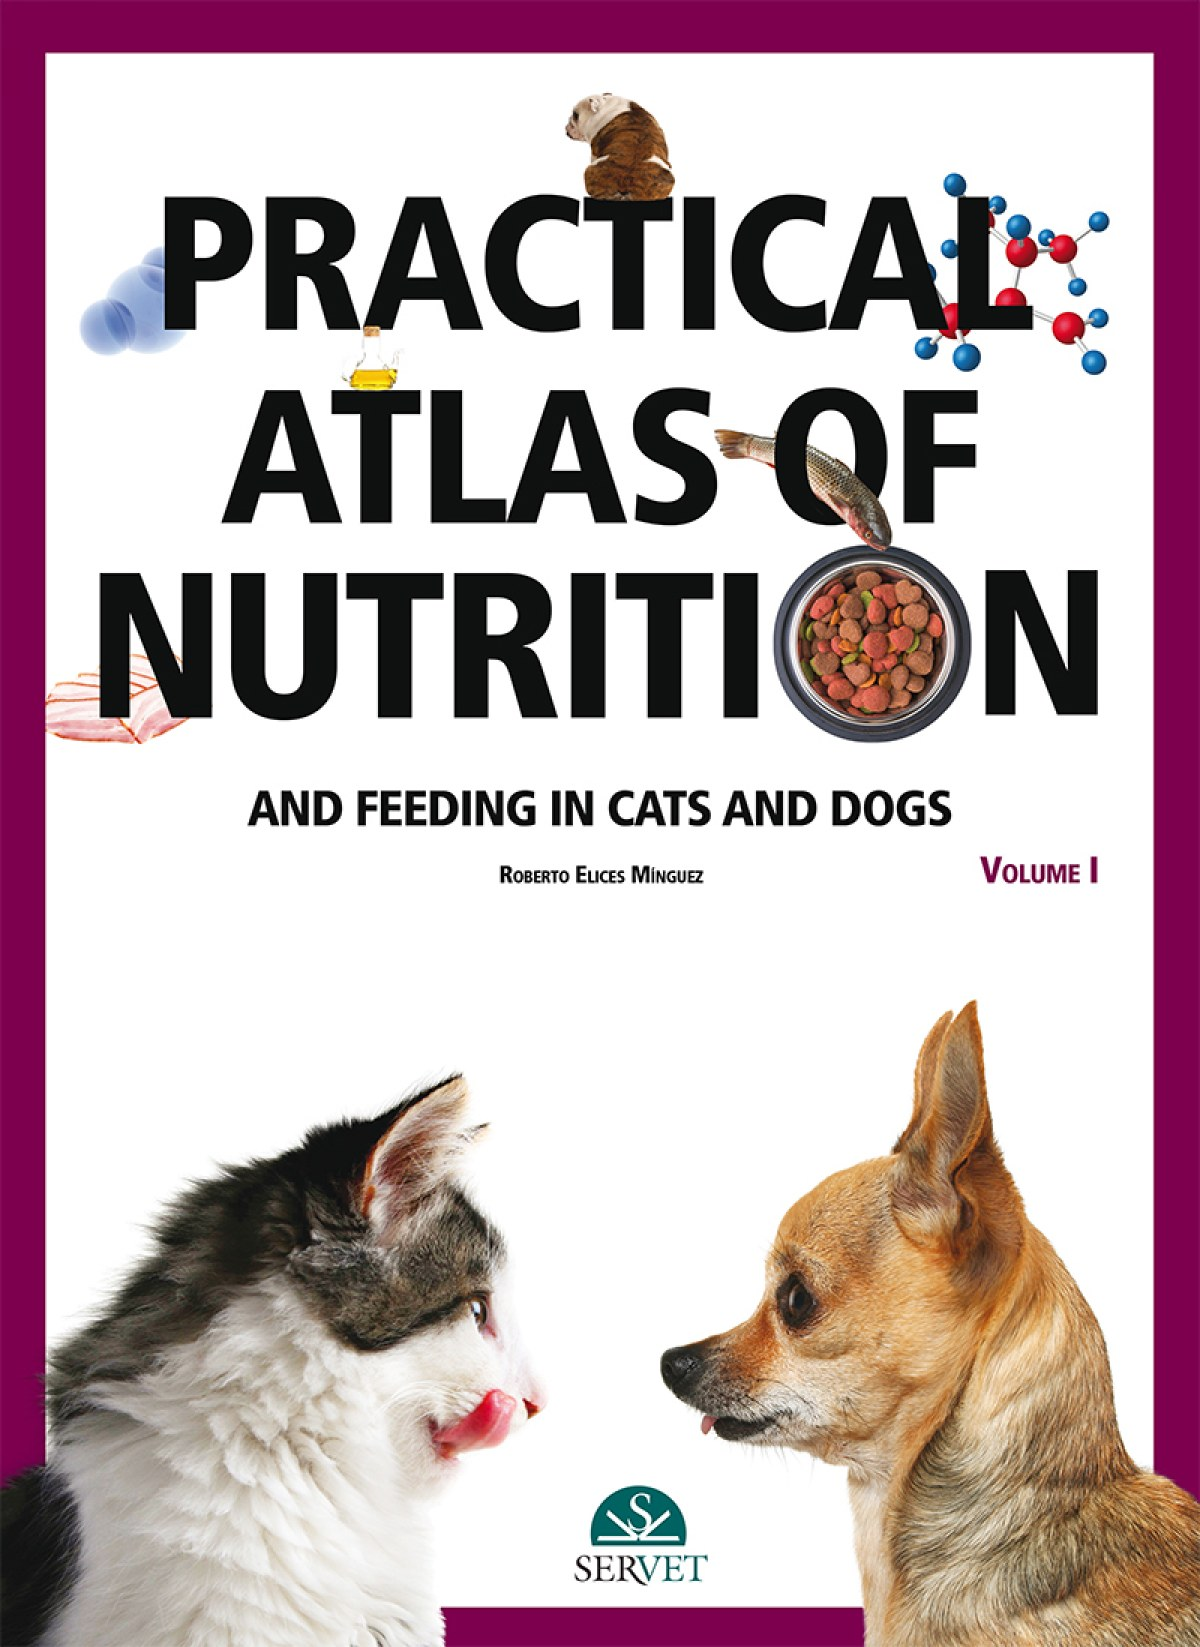 Practical atlas of nutrition and feeding in cats and dogs Volume I